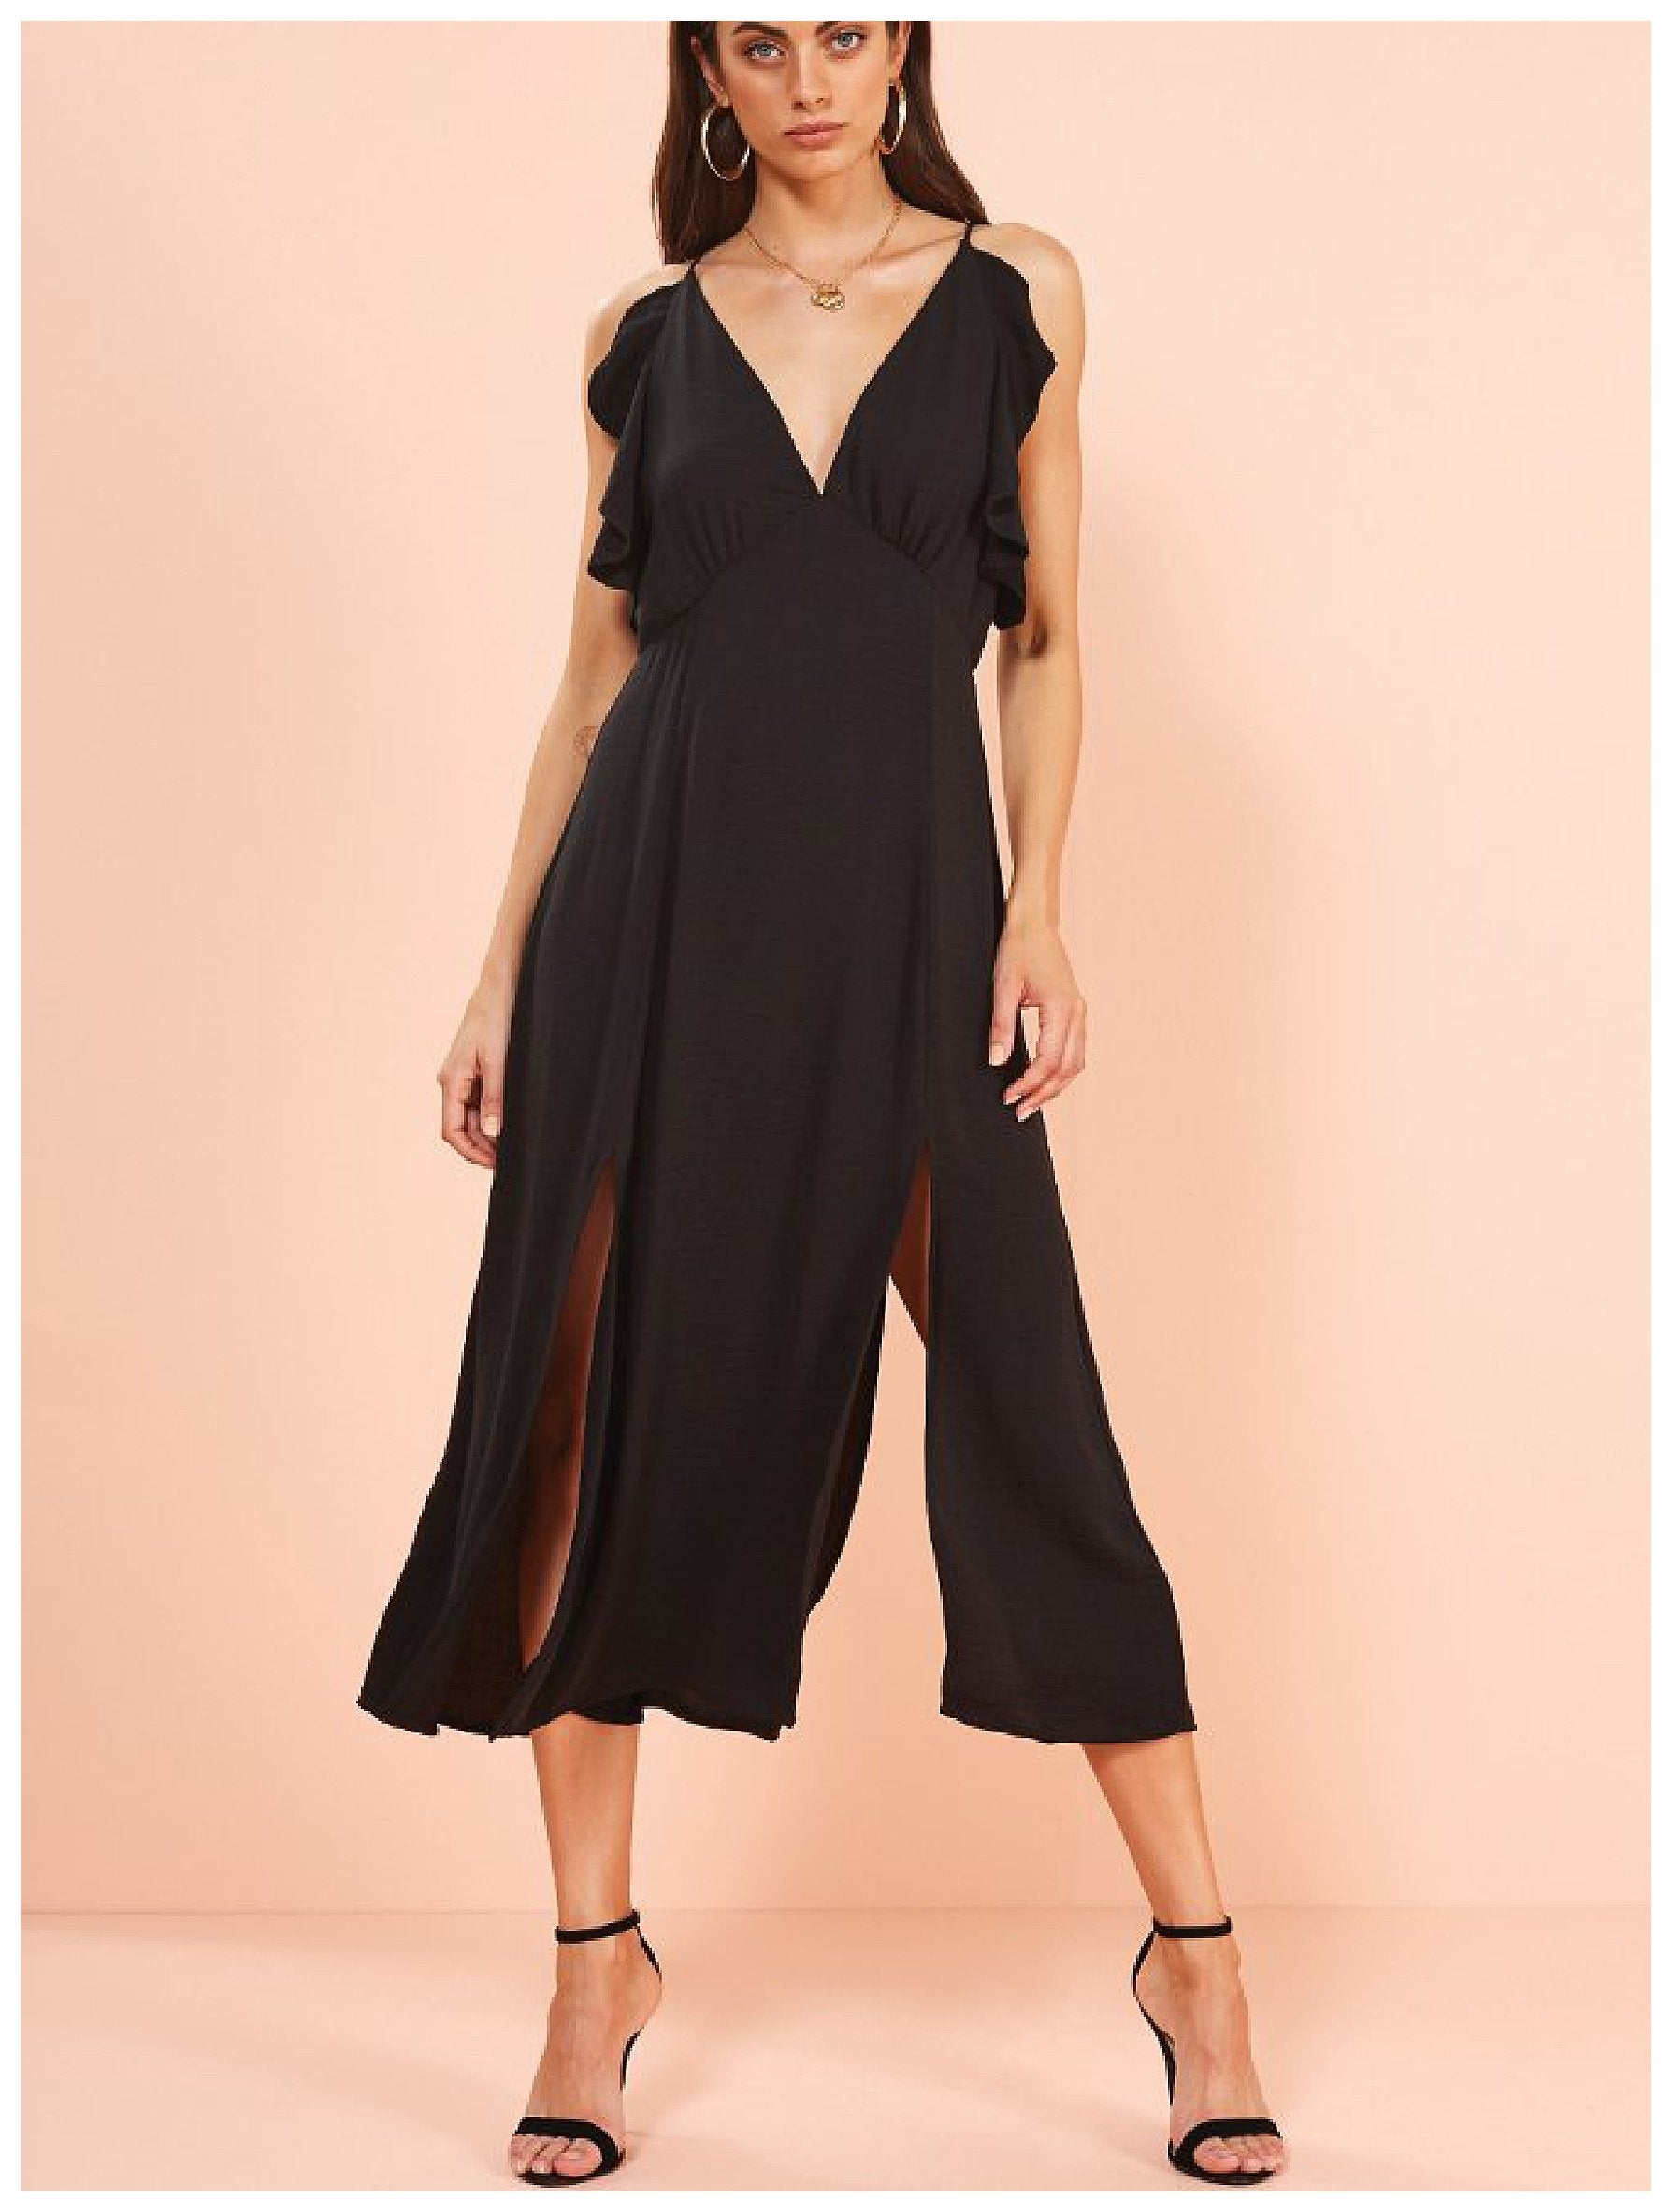 Model wears a MinkPink dress. The Vera Maxi Dress is a black chiffon-like midi dress with ruffles along the side of the breast, the dress has a v shaped neckline and two slits on either leg with an open back.